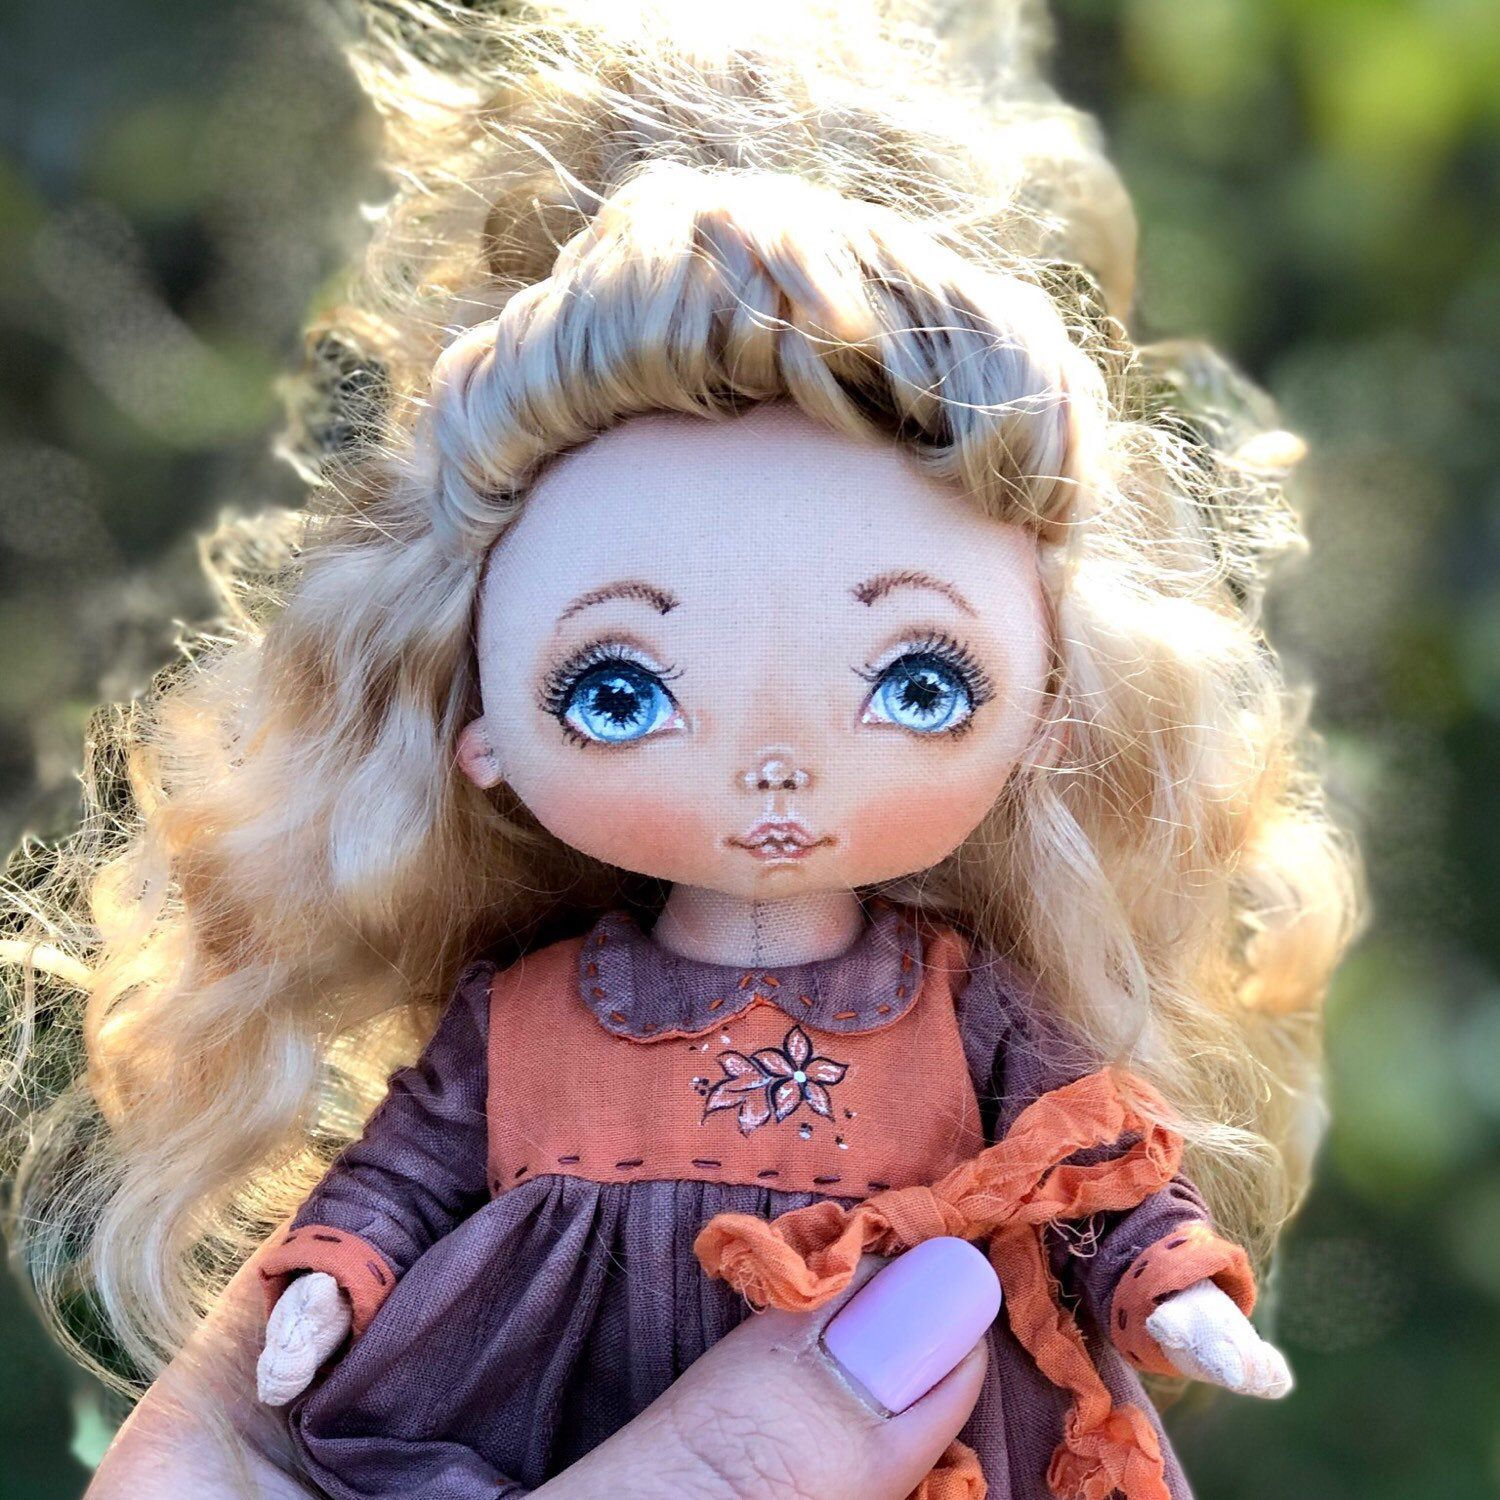 How to draw the face of a textile doll ? Tutorial on creating a soft doll for beginners . Masster class - the face of a handmade doll #dollfacepainting